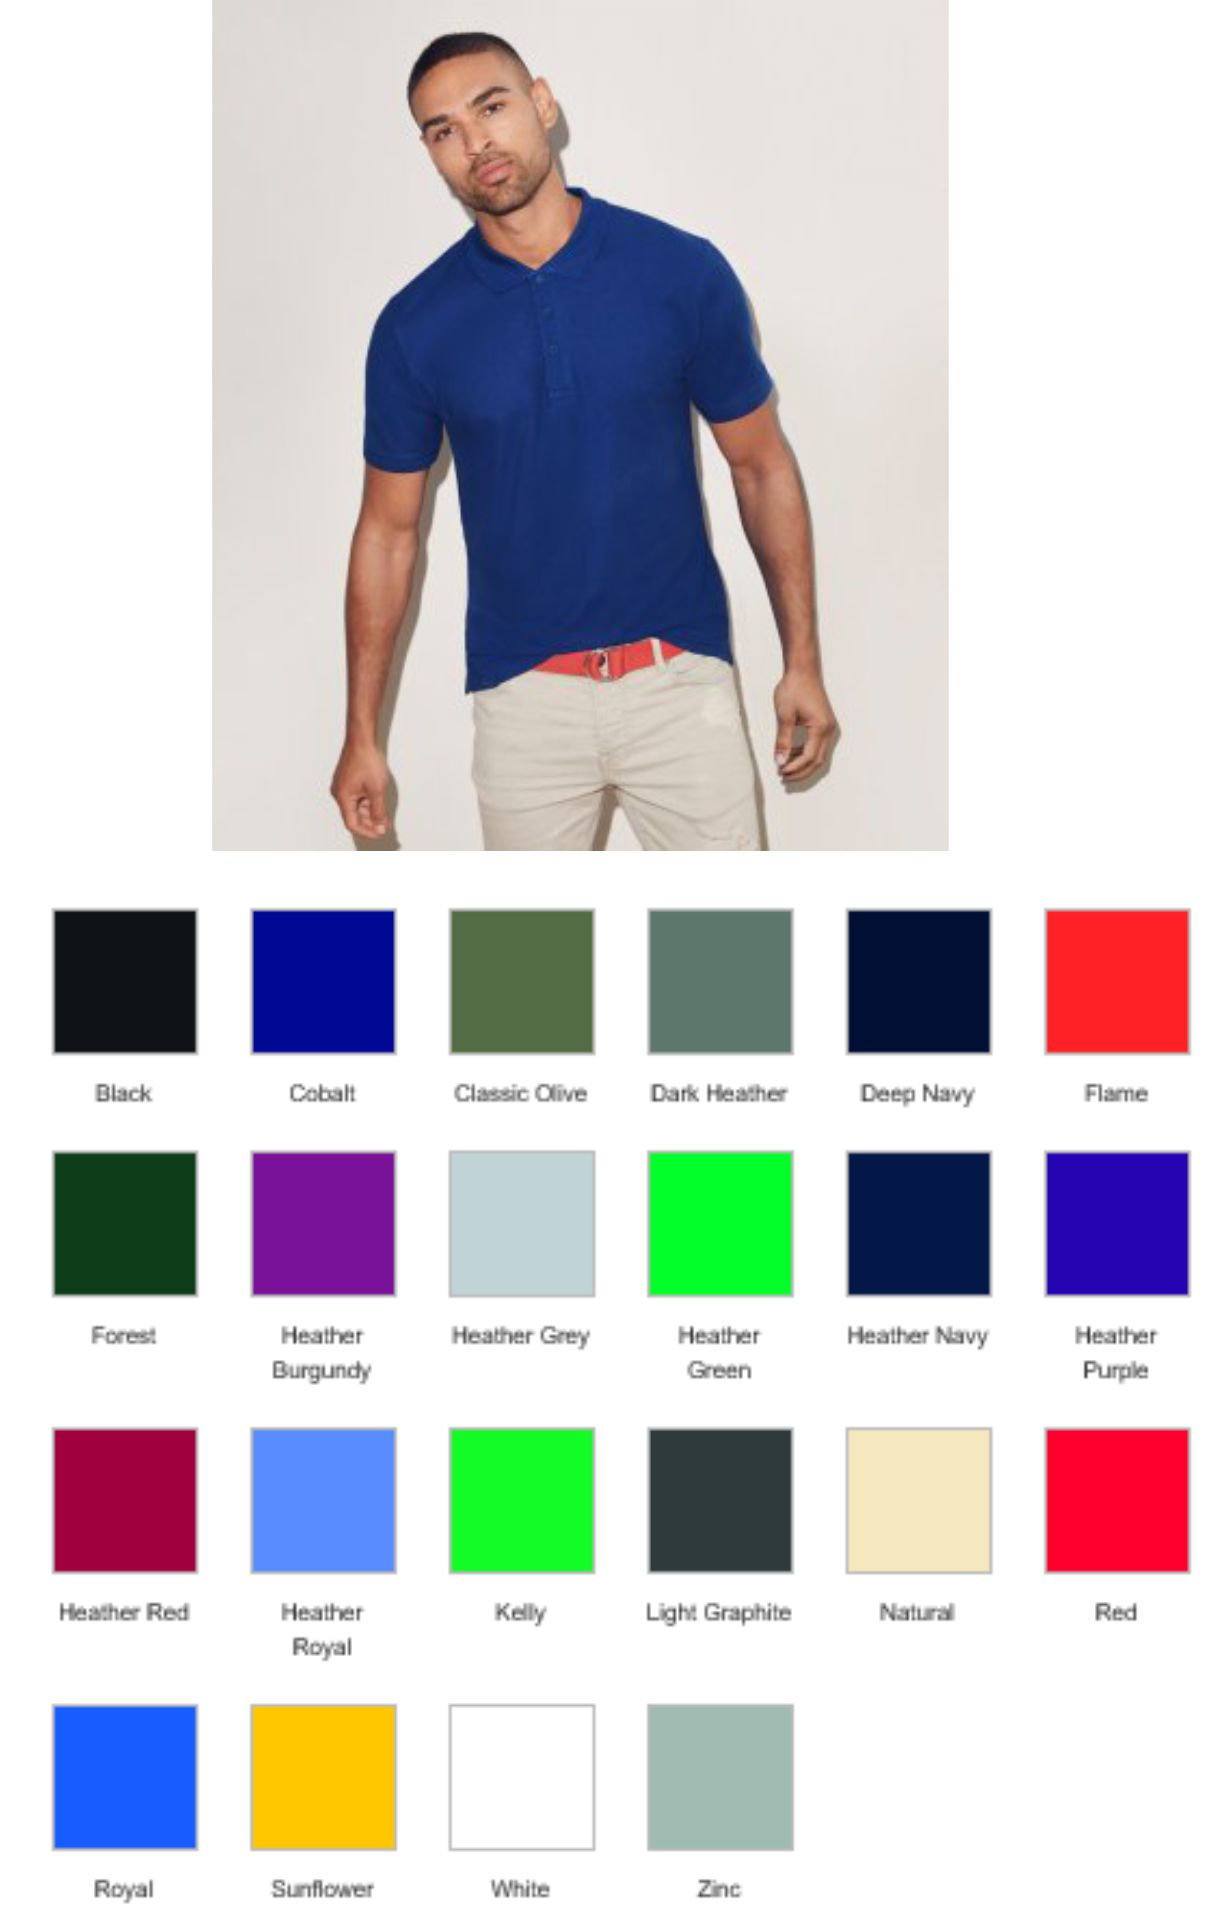 Fruit of the Loom SS145 Iconic Pique Polo Shirt